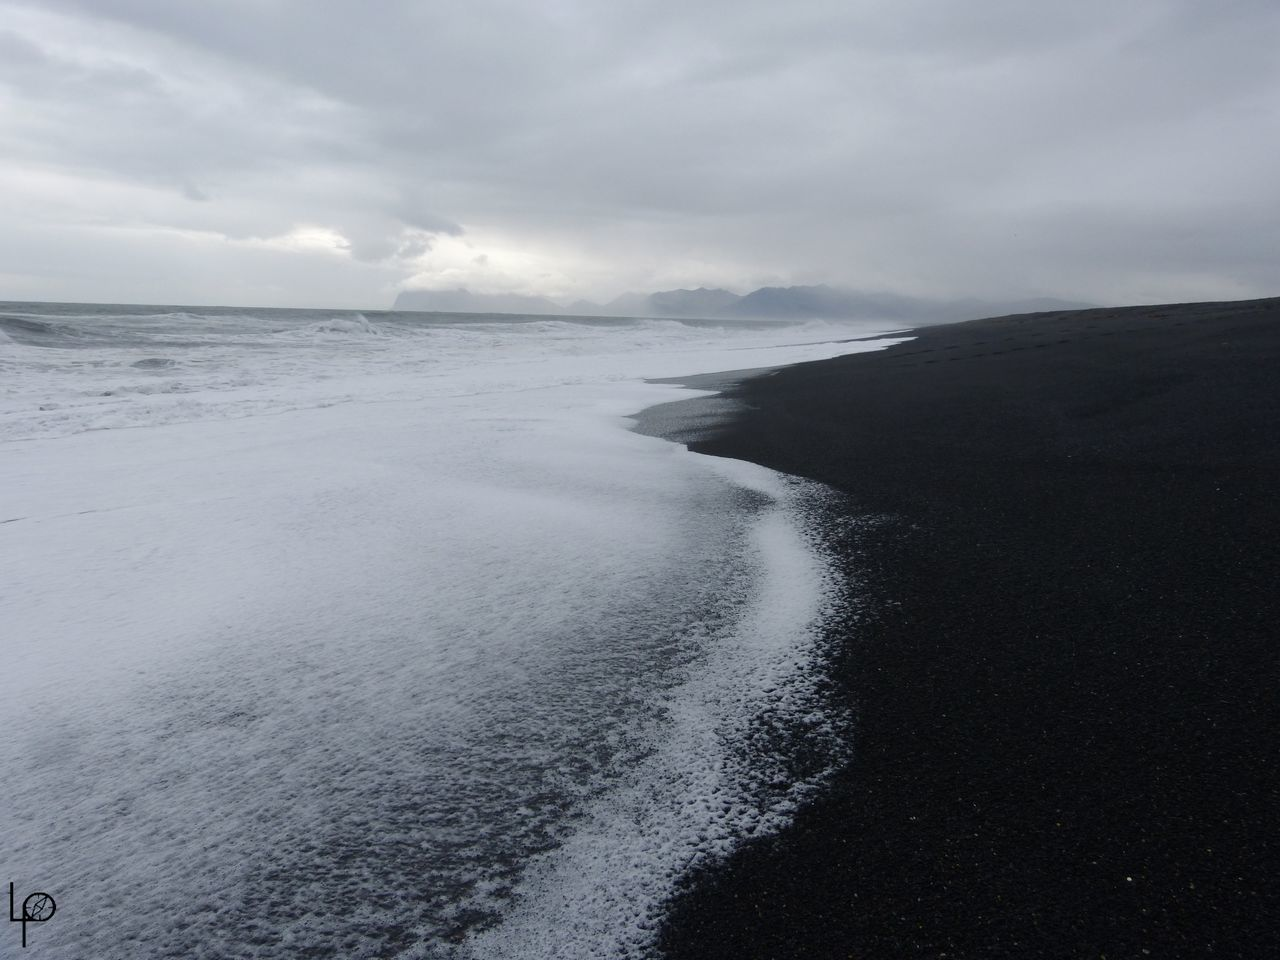 Beauty In Nature Blanche Day Ecume Islande Nature No People Noir Outdoors Plage Scenics Sea Sky Tranquil Scene Tranquility Volcanic  Water Wave